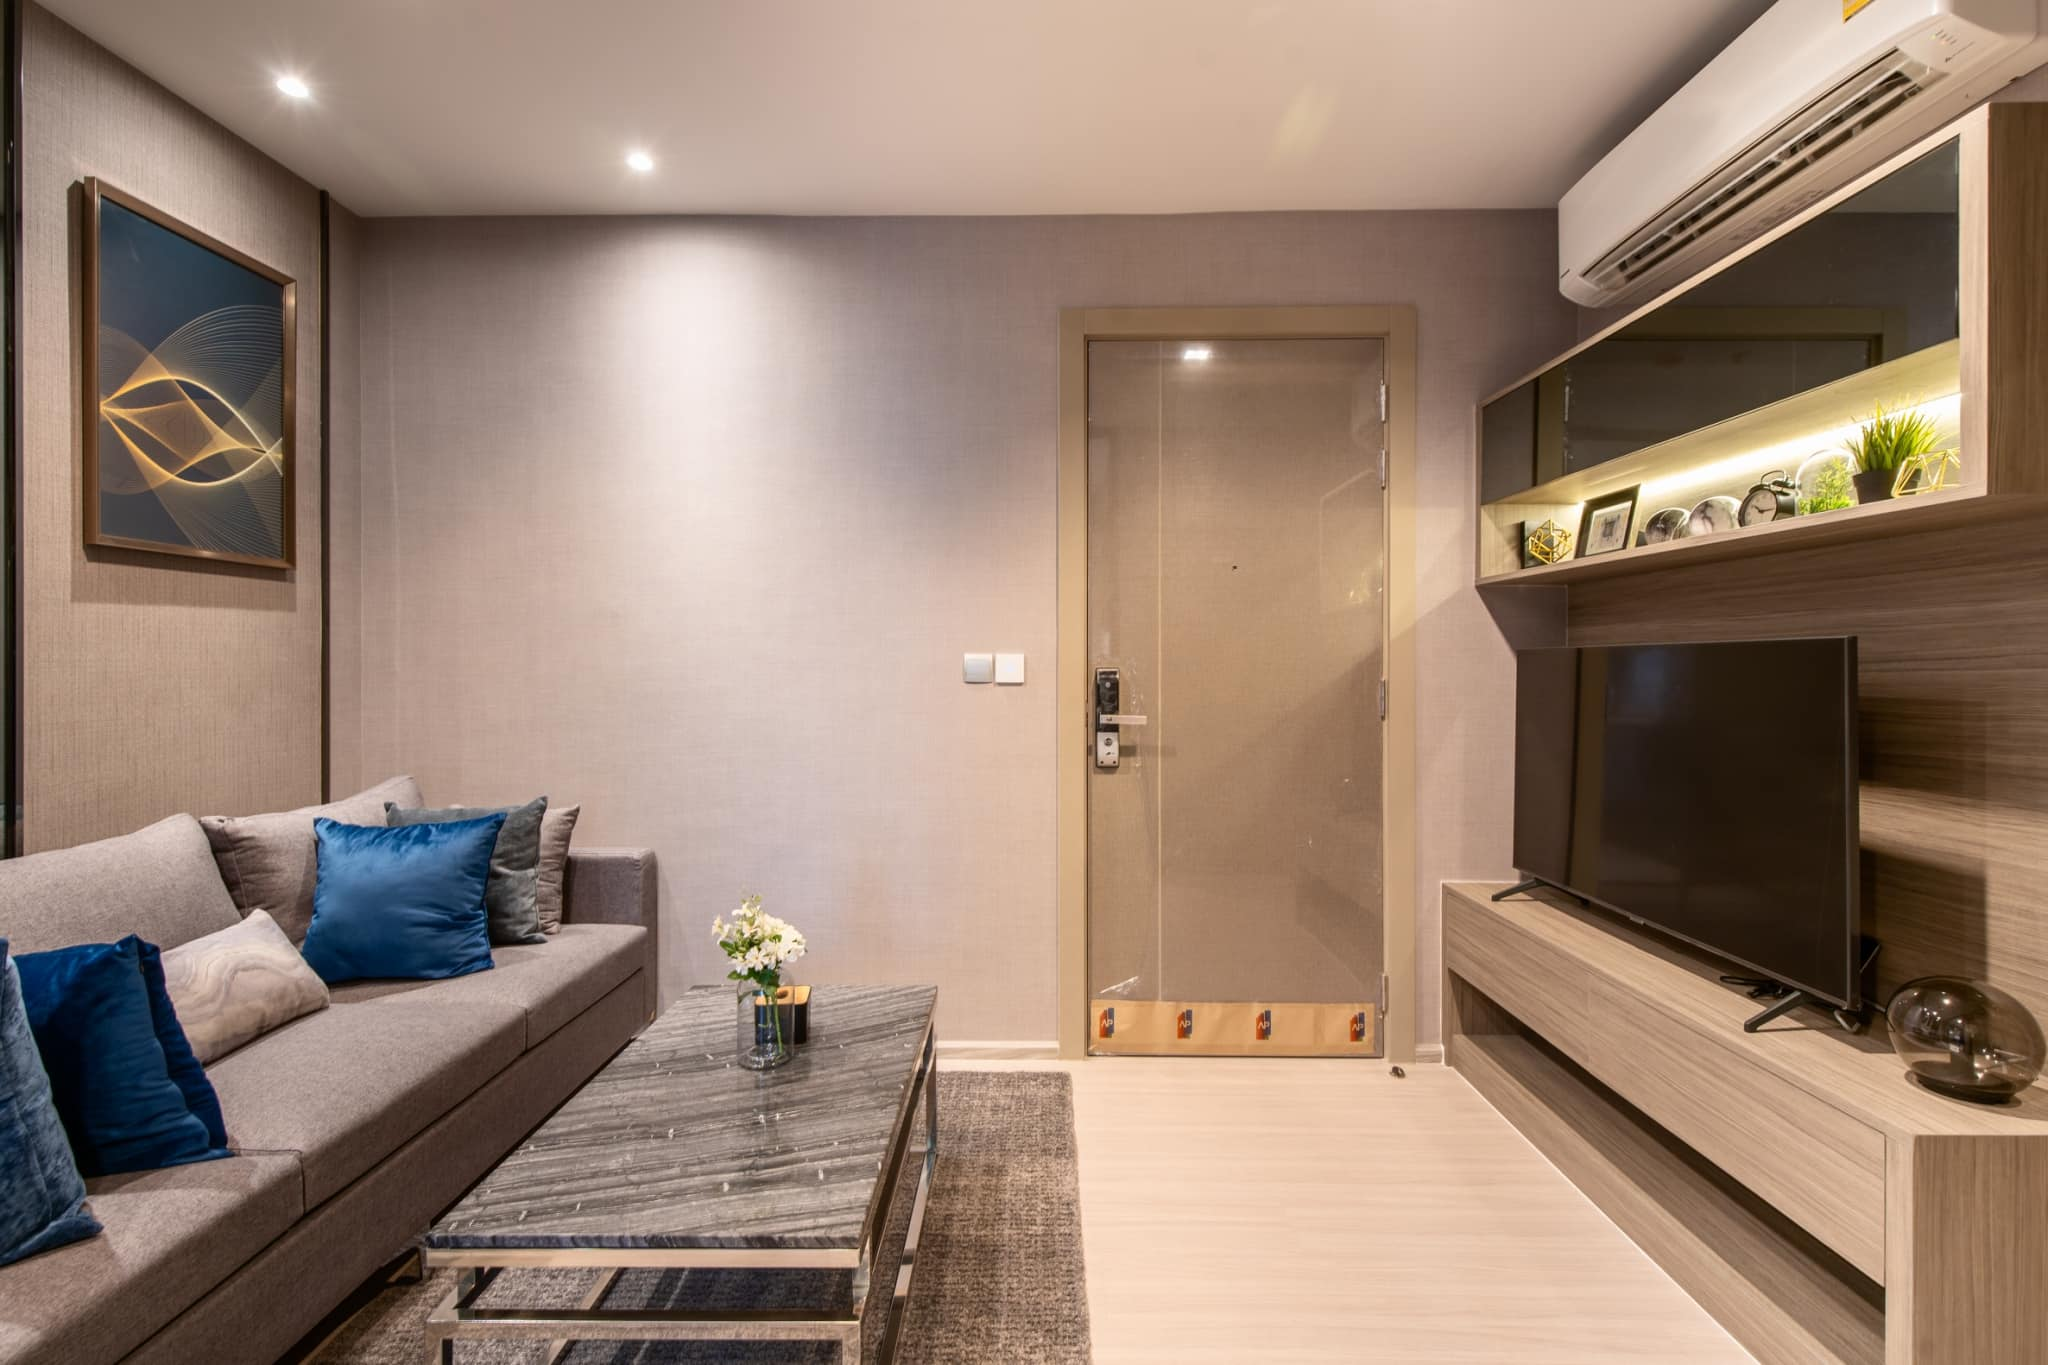 LTH2693 – LIFE Asoke – Rama 9 FOR RENT 1 bed 1 bath size 32 Sq.M. Near MRT Rama 9 station ONLY 21,500 THB/Month